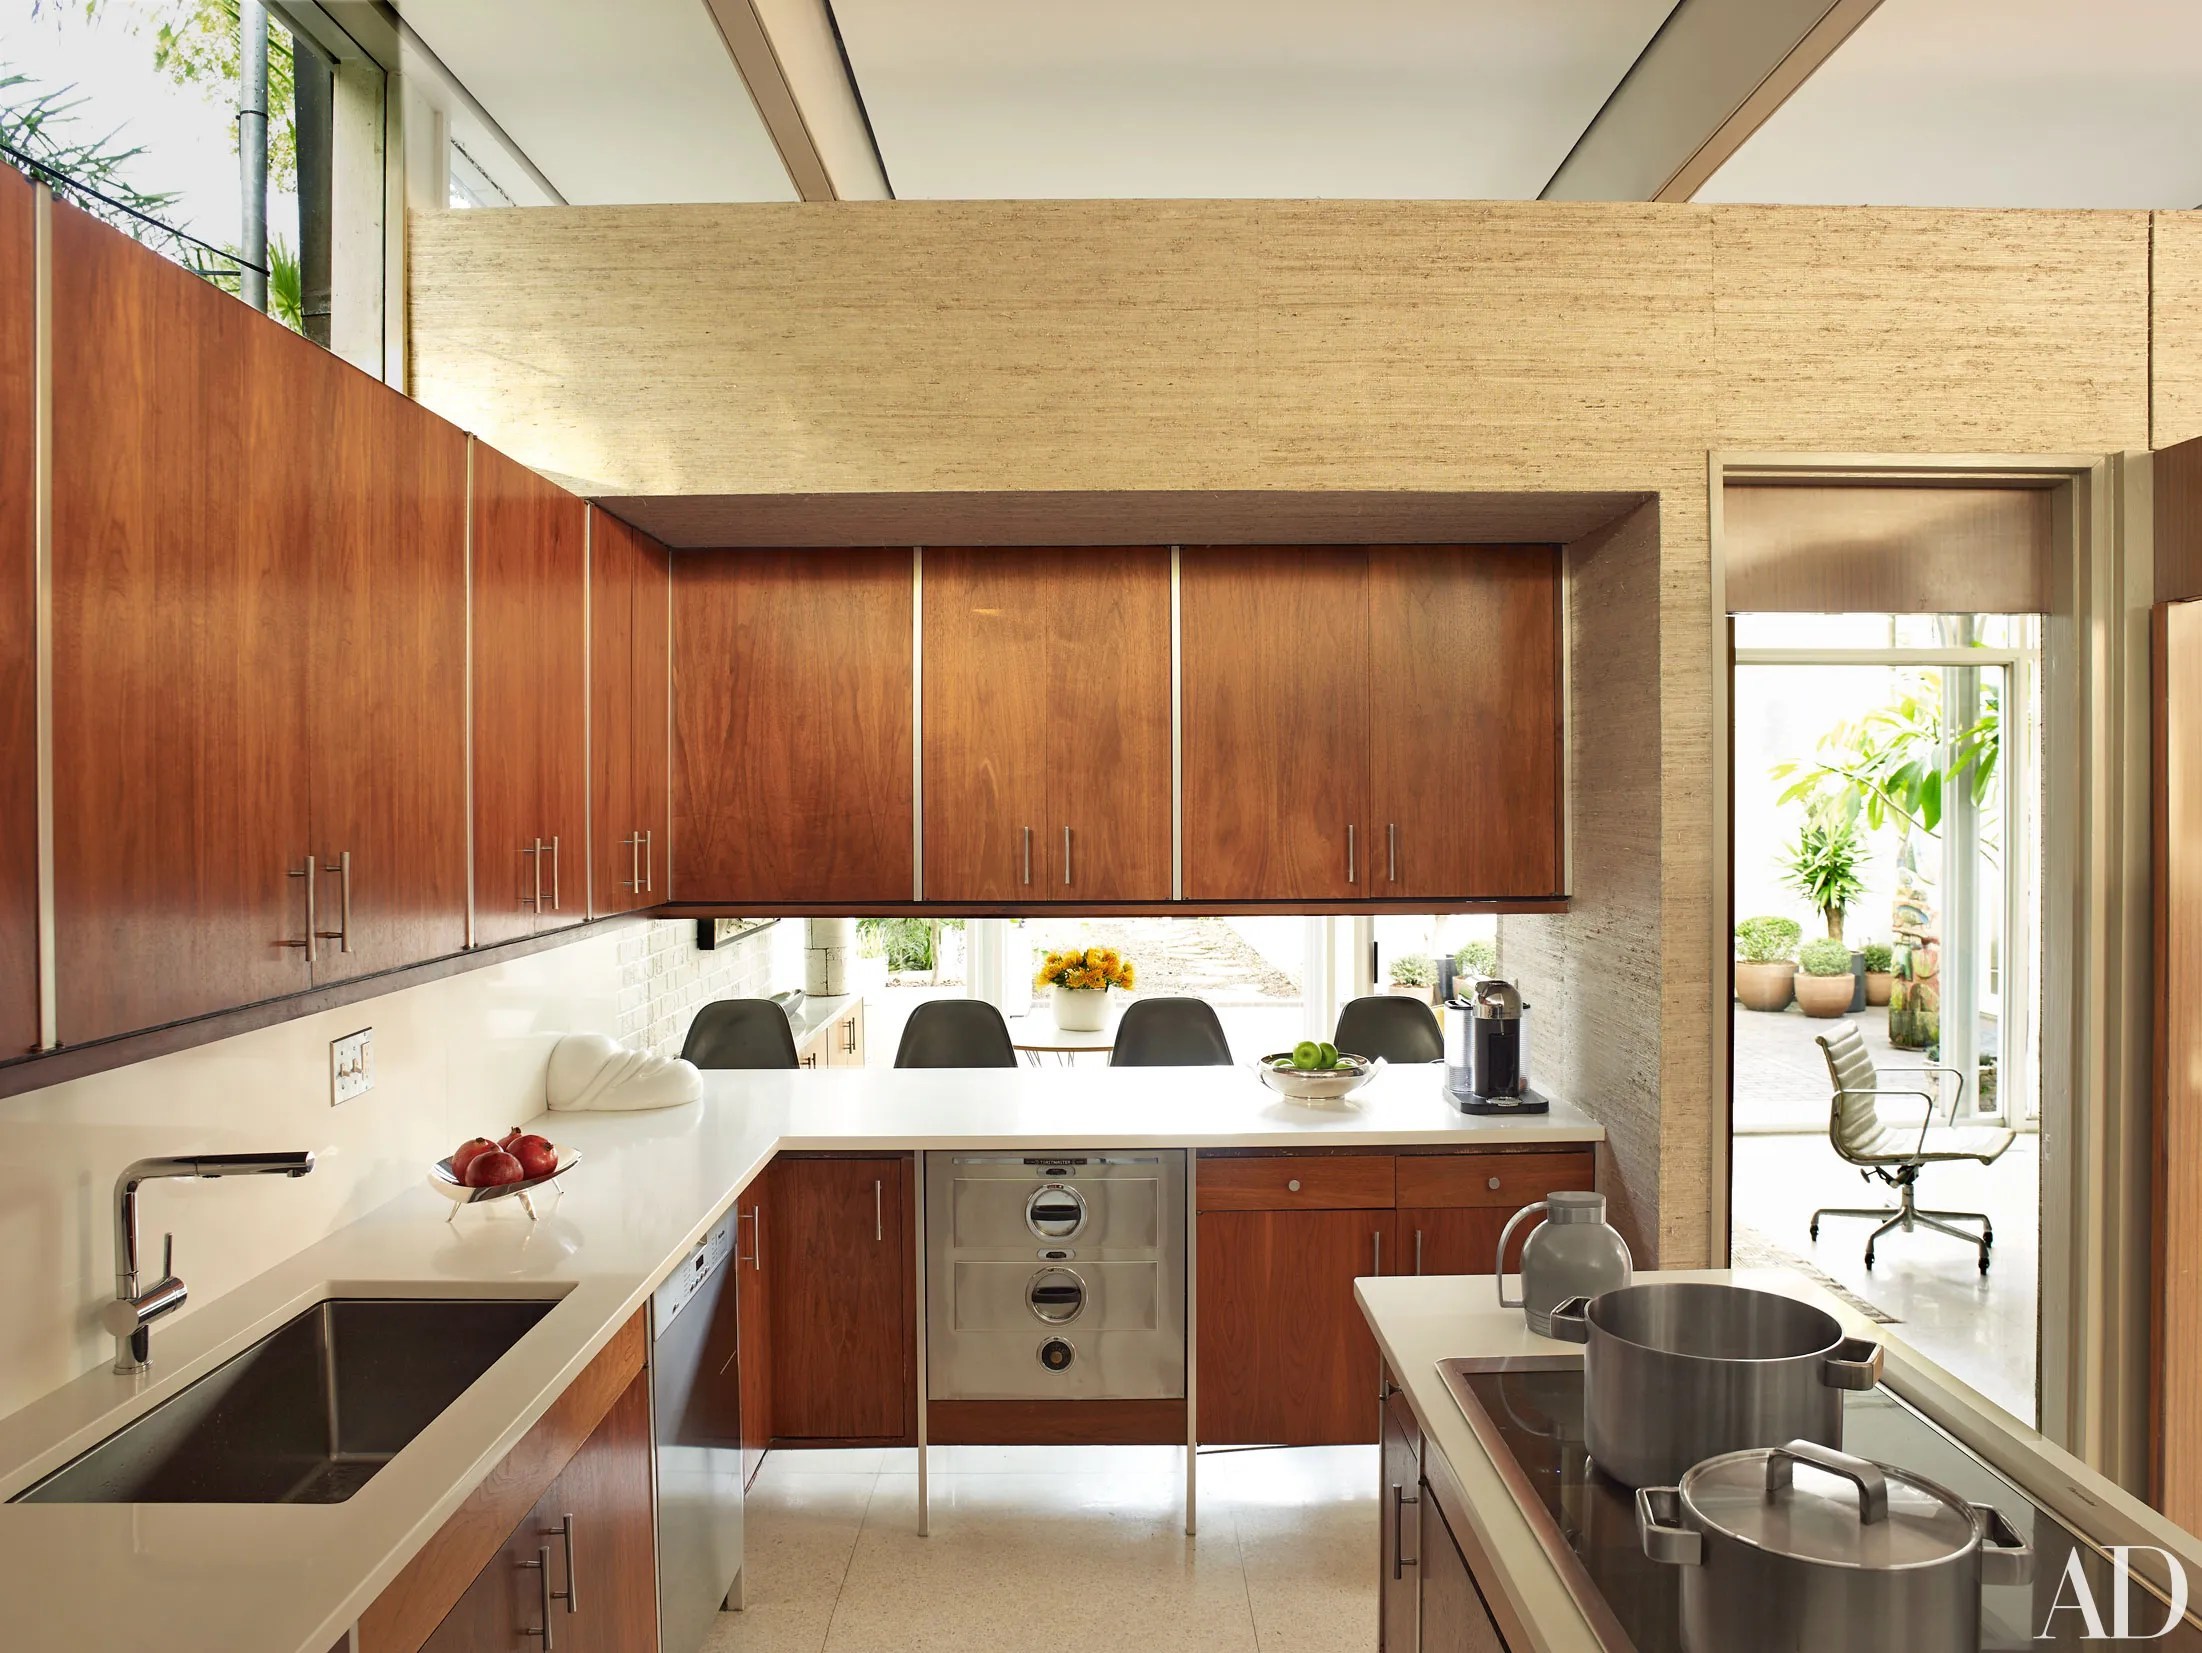 century kitchen cabinets counter height island get the look midcentury modern in new orleans